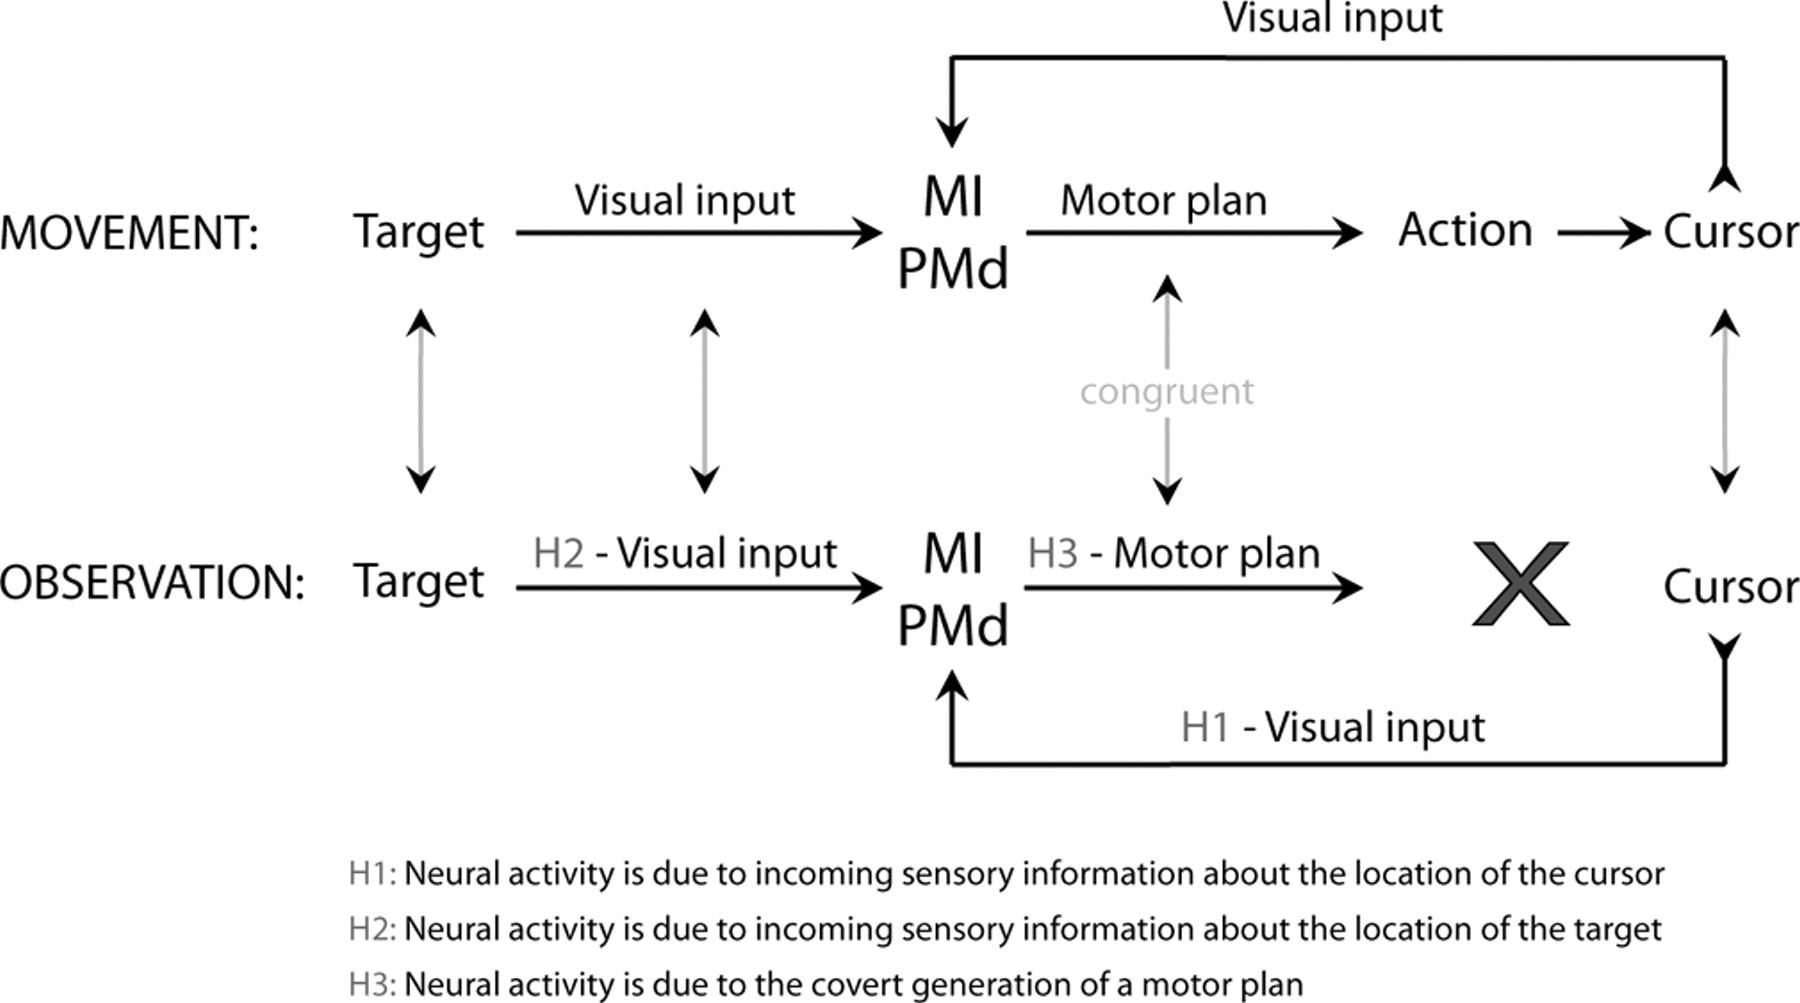 Congruent Activity During Action And Observation In Motor Block Diagram Of The Egt Emg Cursor Control System Eye Gaze Download Figure